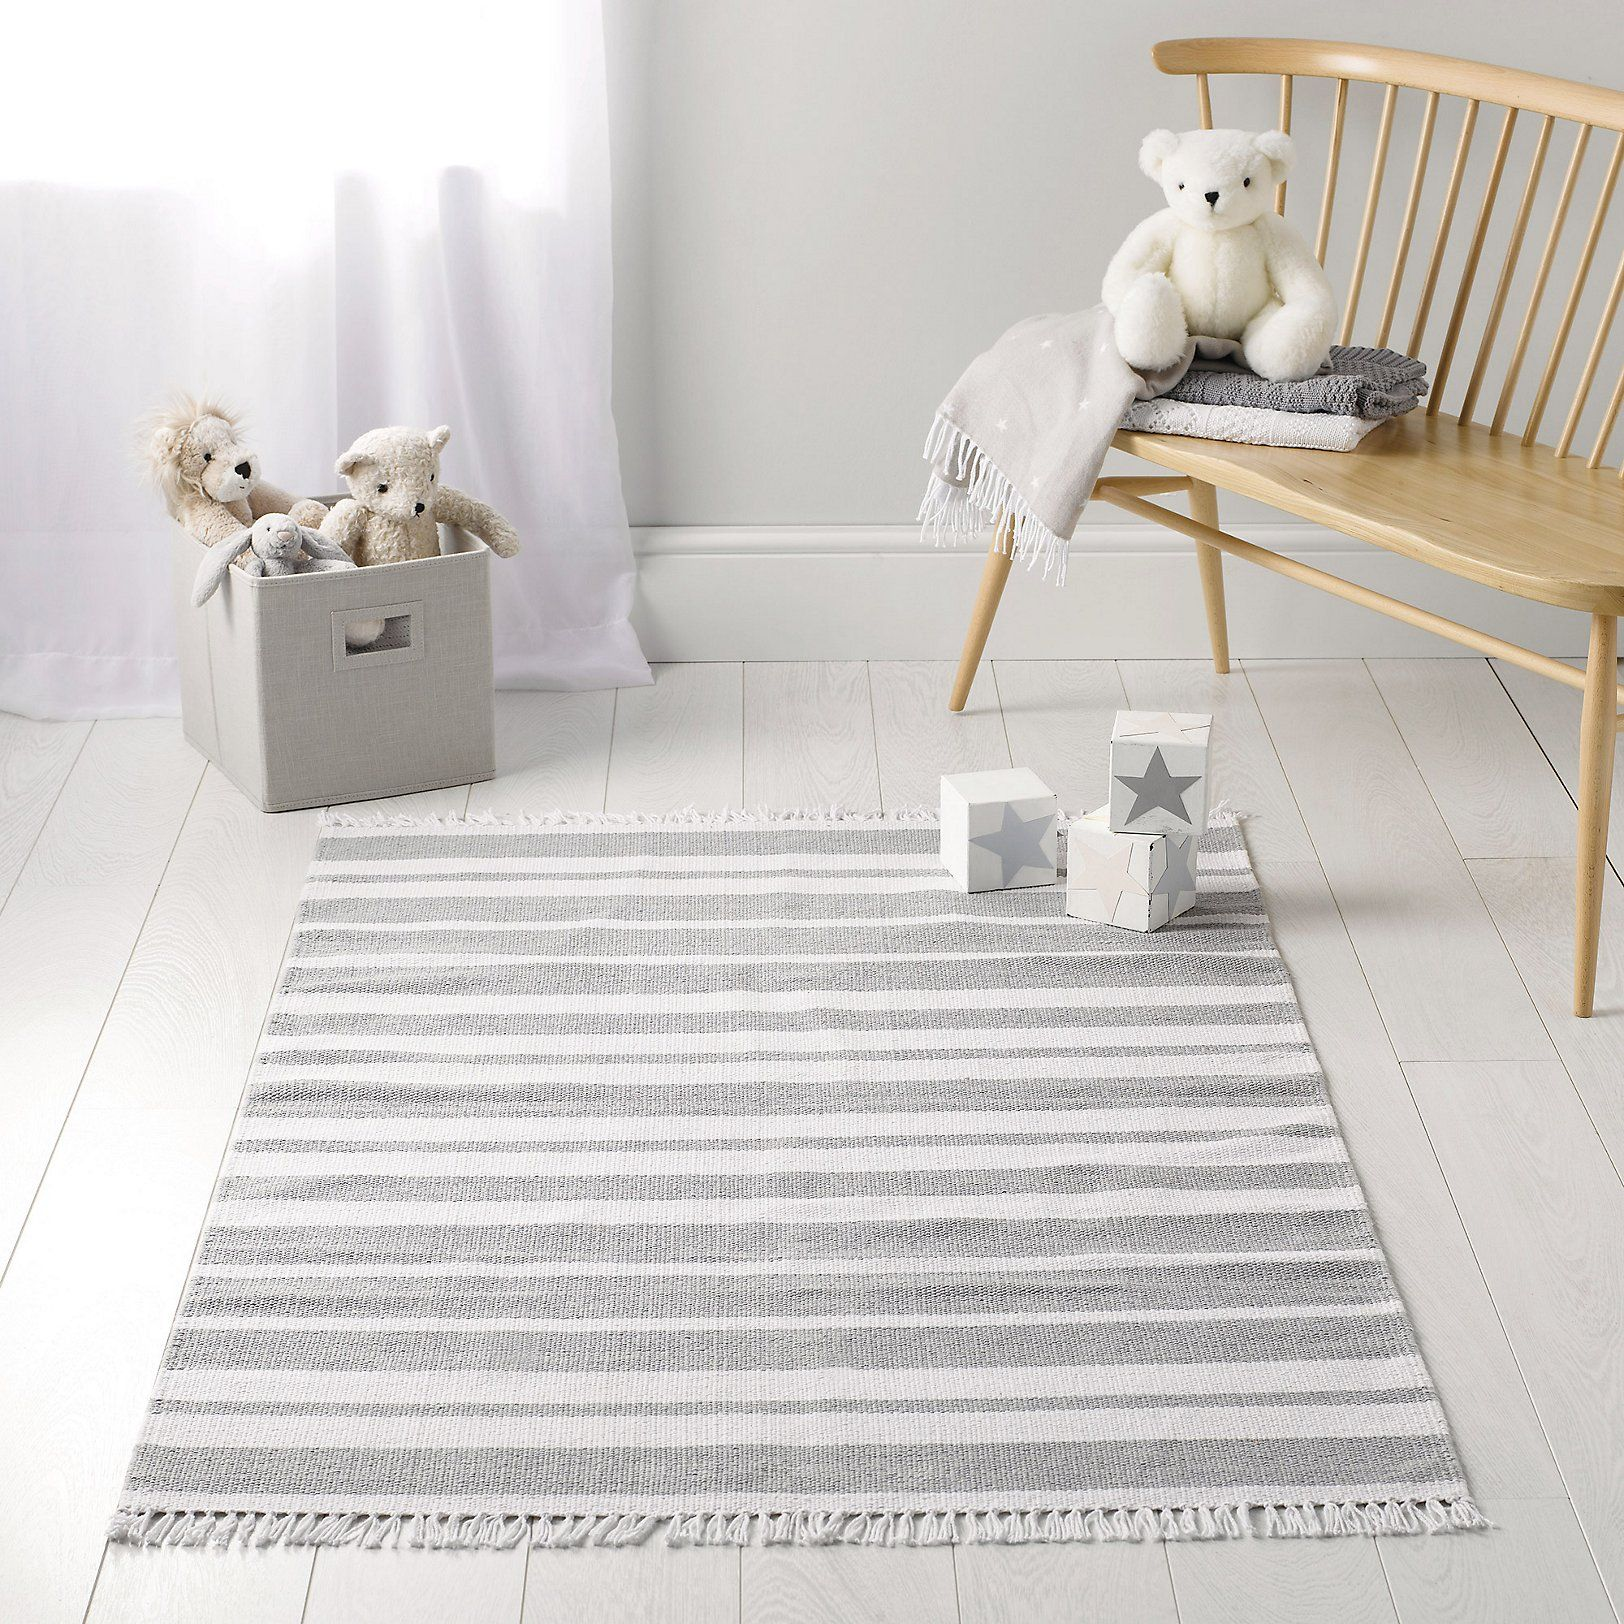 Grey Stripe Rug Bedroom Accessories Childrens The Little White Company